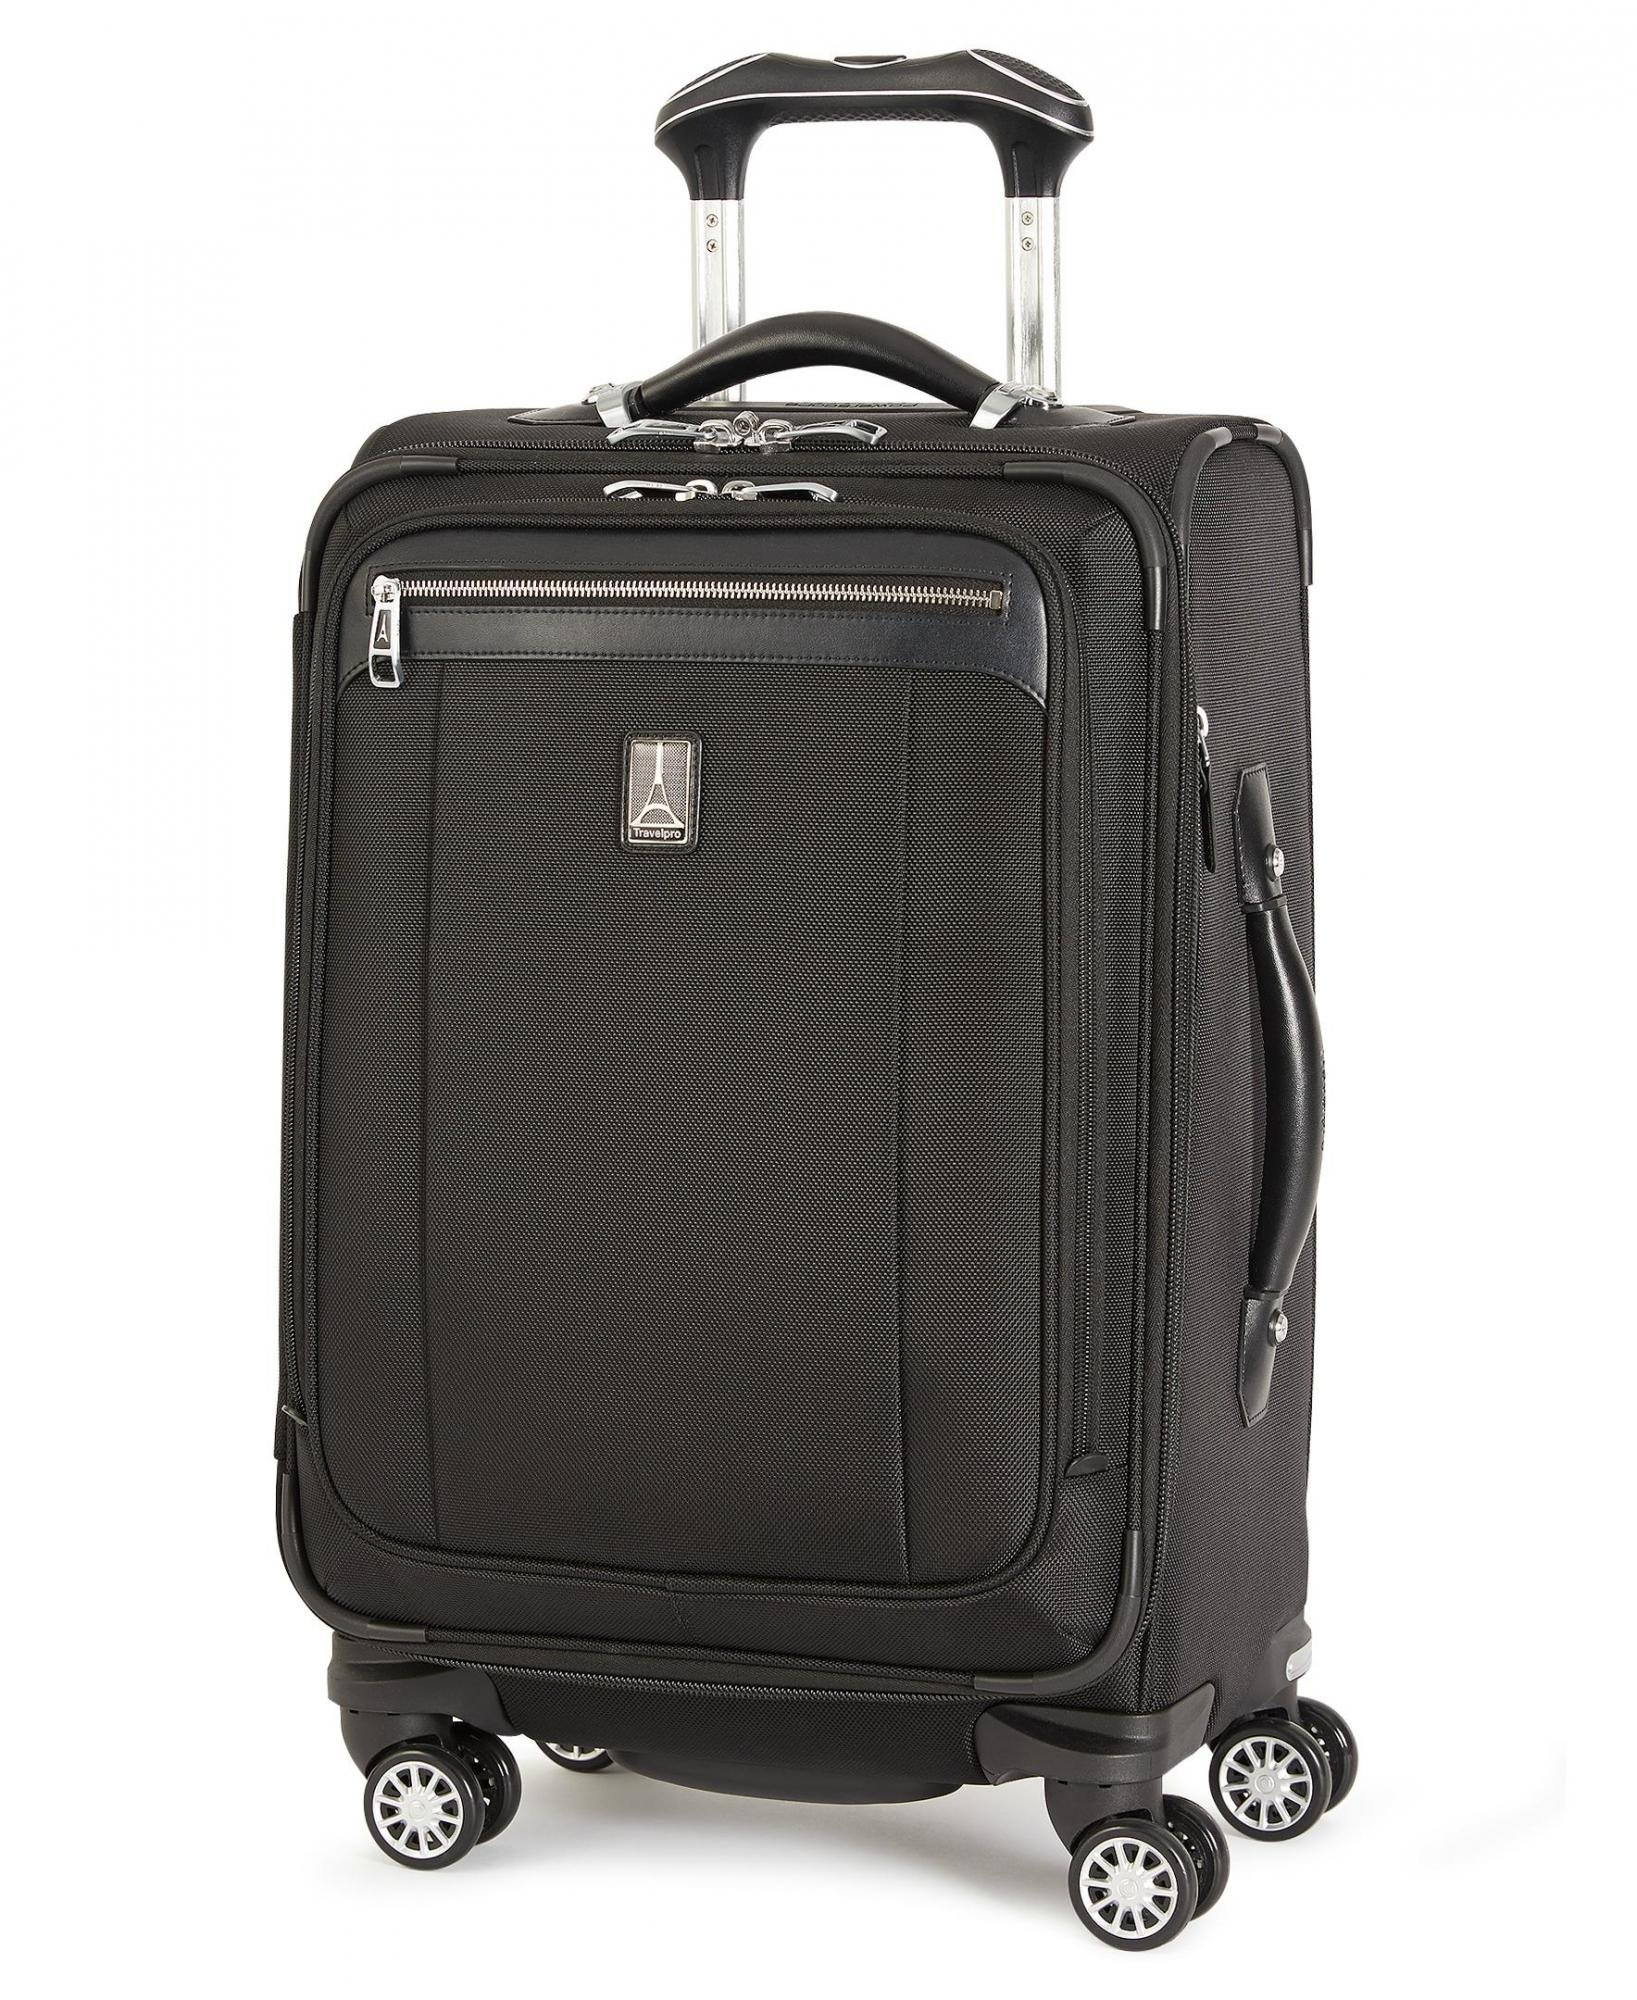 Travelpro Platinum Magna 2 20 Inch Express Business Plus Rollaboard (One size, Black)